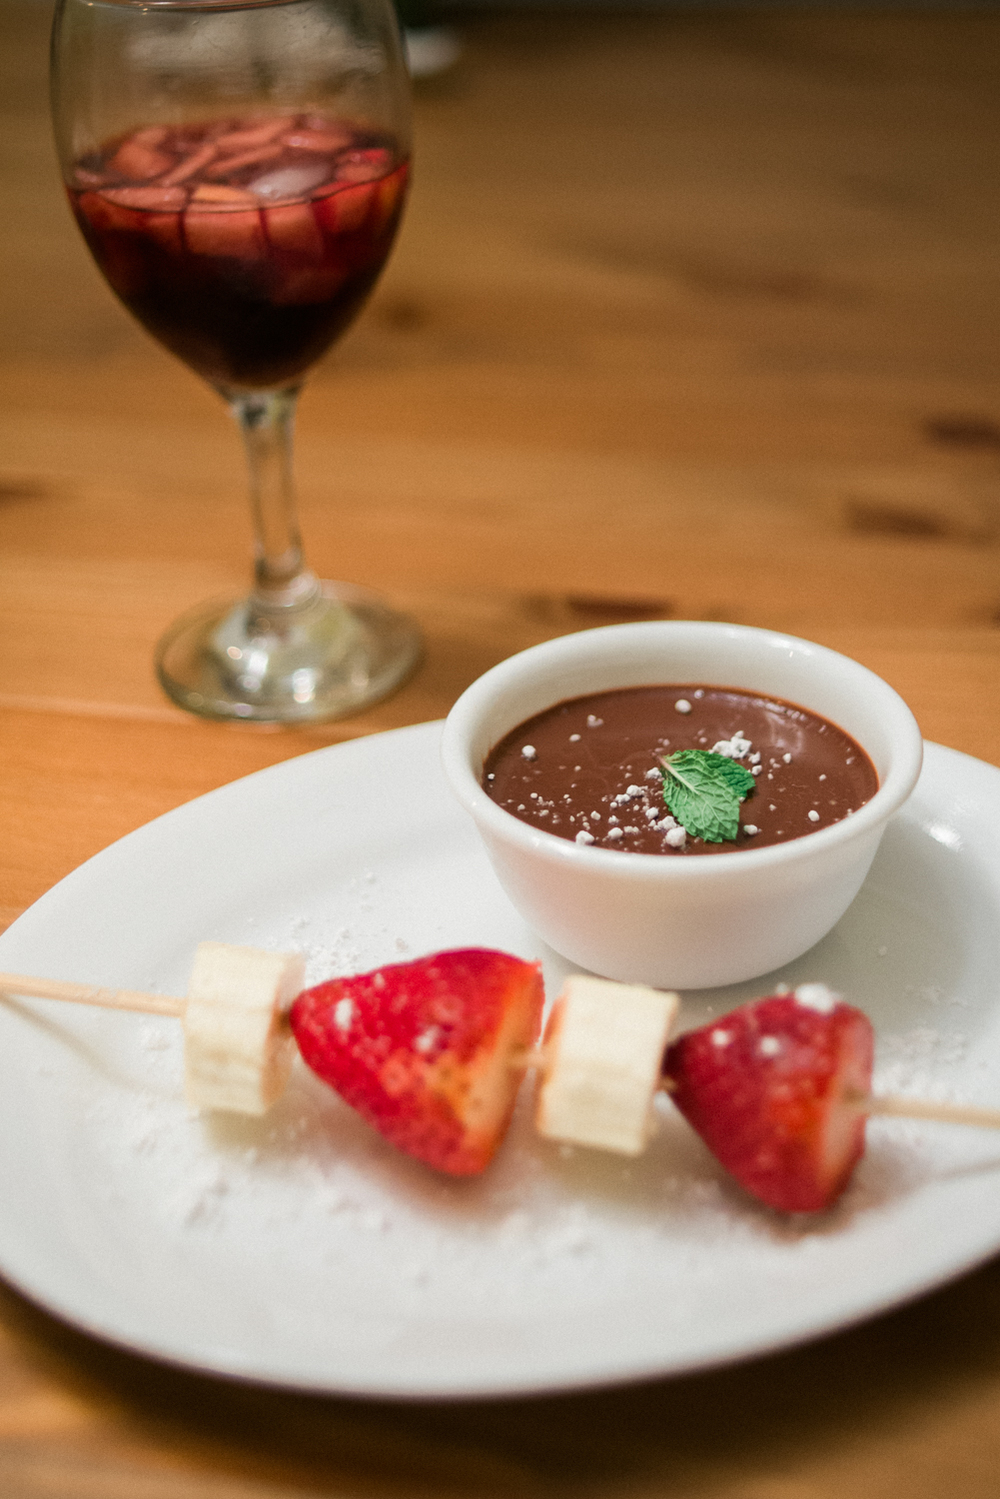 valentines-day-2015-mocha-pot-de-creme-strawberries-shelley-marie-photo.jpg